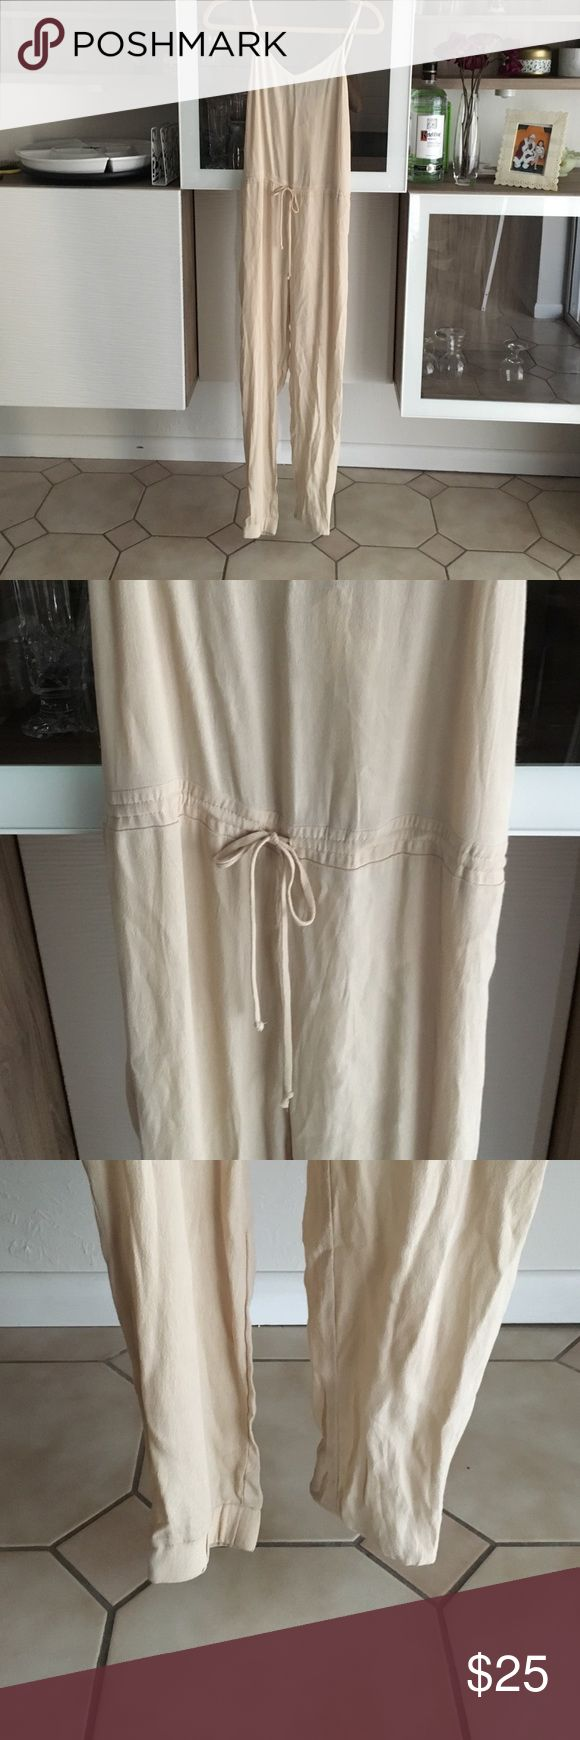 NWT nude jumper Bought from TJmaxx put in urban outfitters for views. It's new with tags and would make a great gift! The straps are adjustable as well as the waist! I ❤️ offers Urban Outfitters Dresses